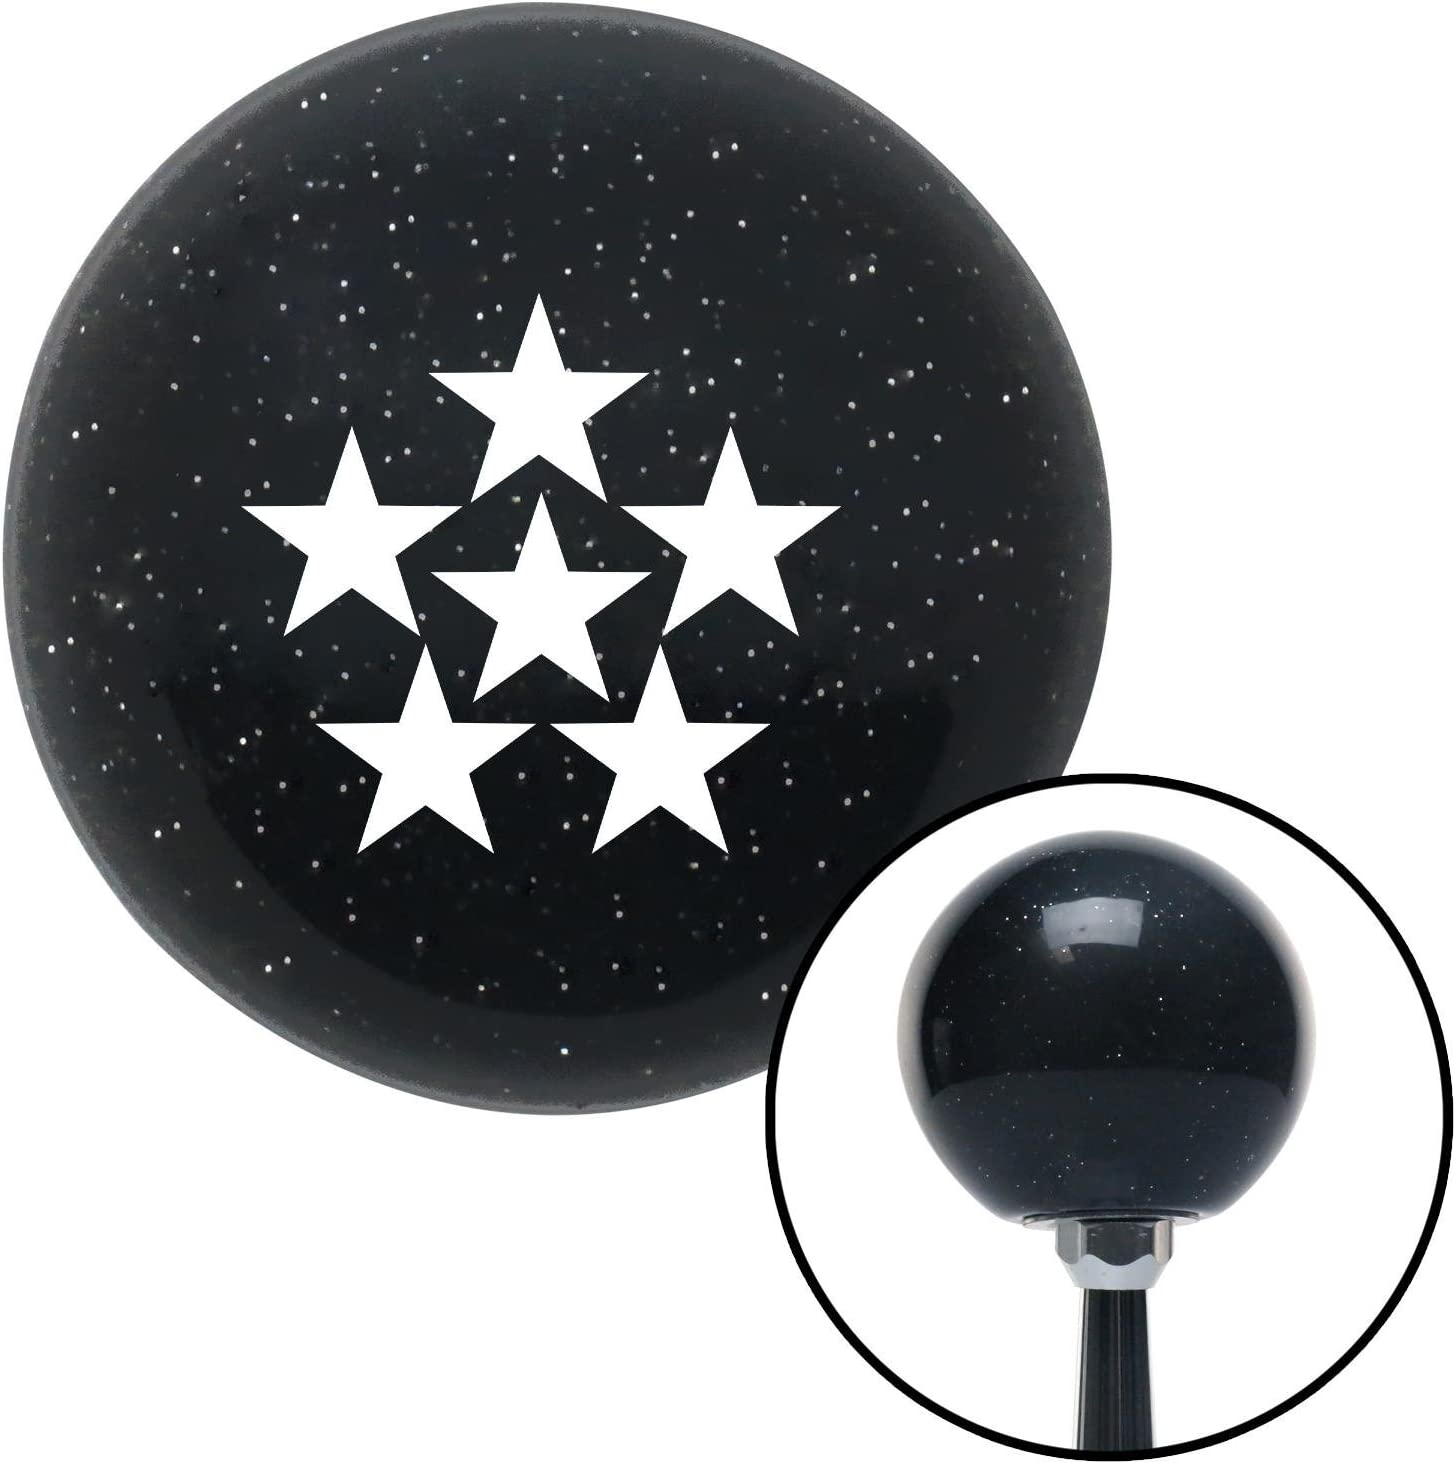 American Shifter 72644 Black Metal Flake Shift Knob with M16 x 1.5 Insert White 6 Star Formation